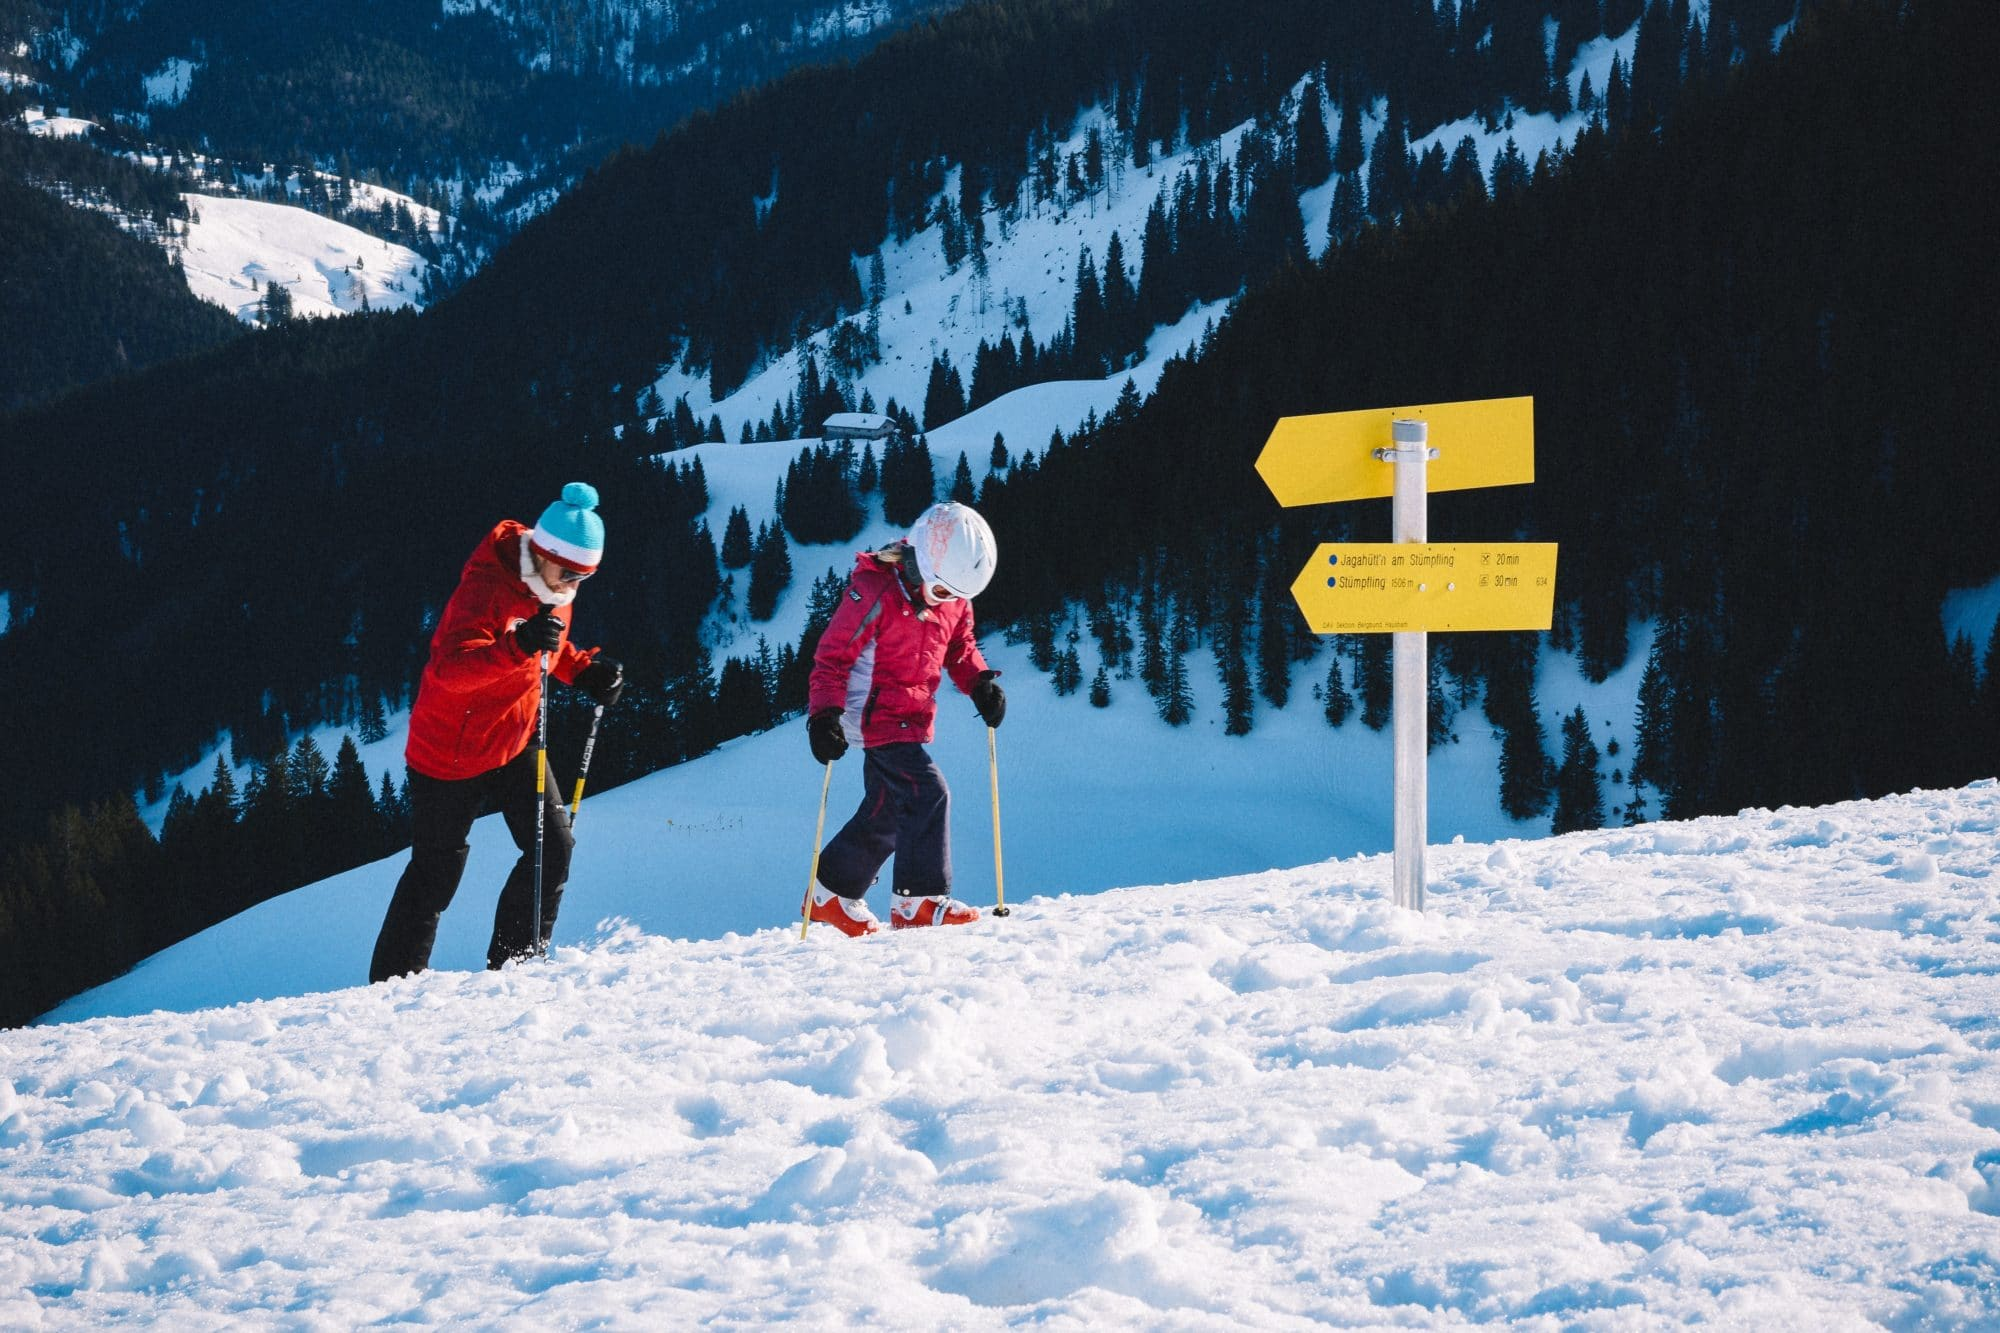 Getting outside for physical activity, with plenty of supervision, is one of the main reasons you students in Andorra are required to participate in ski school programming.